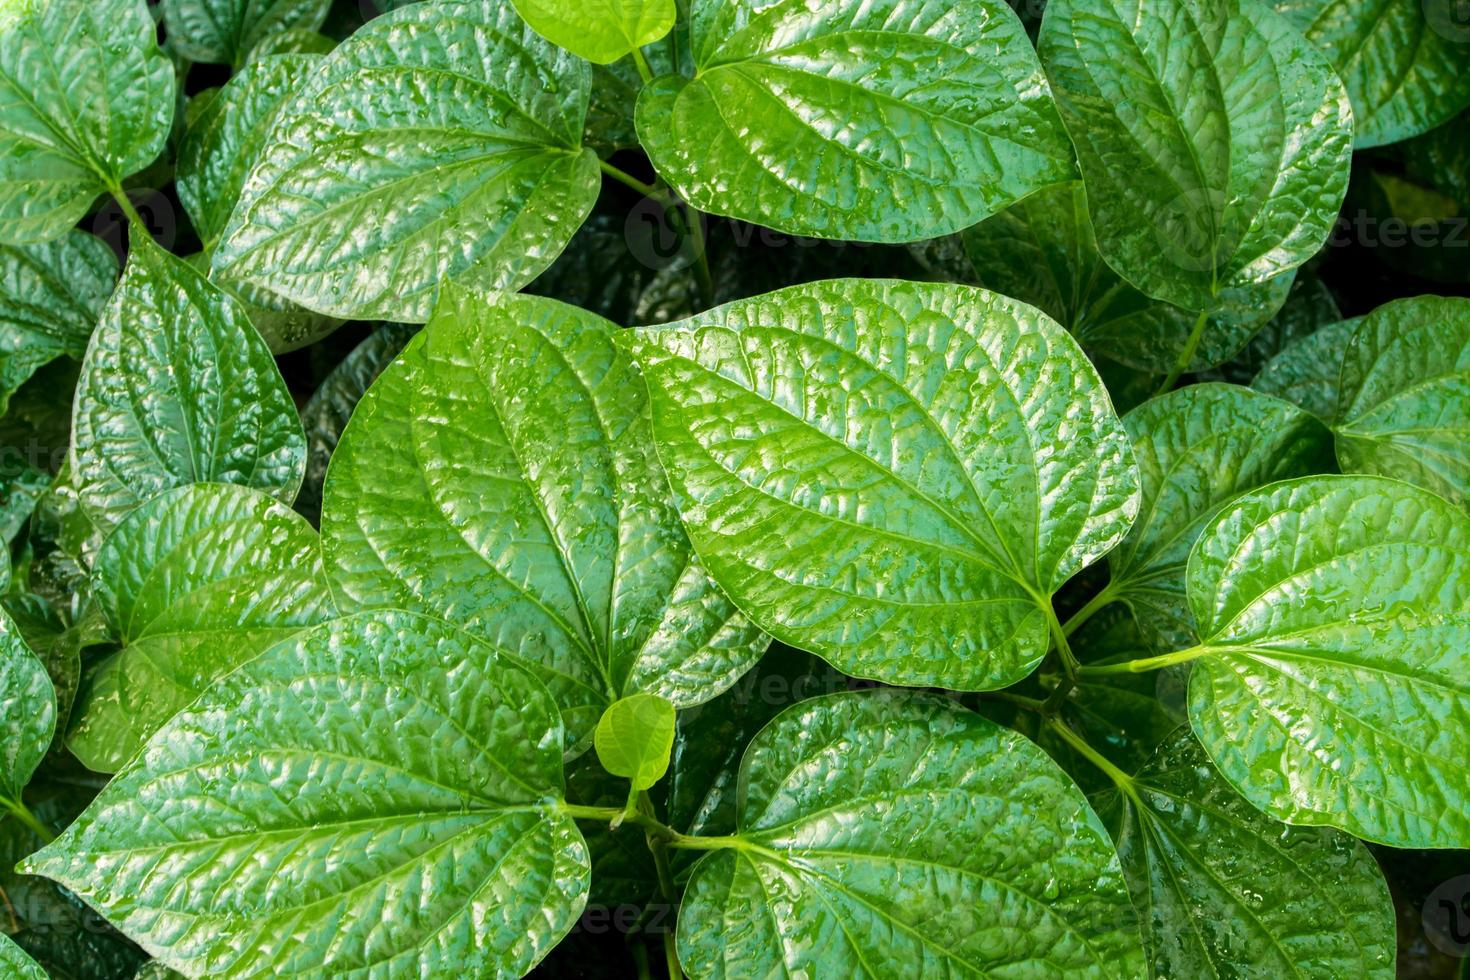 Leaves of Piper sarmentosum, Herb plant background photo